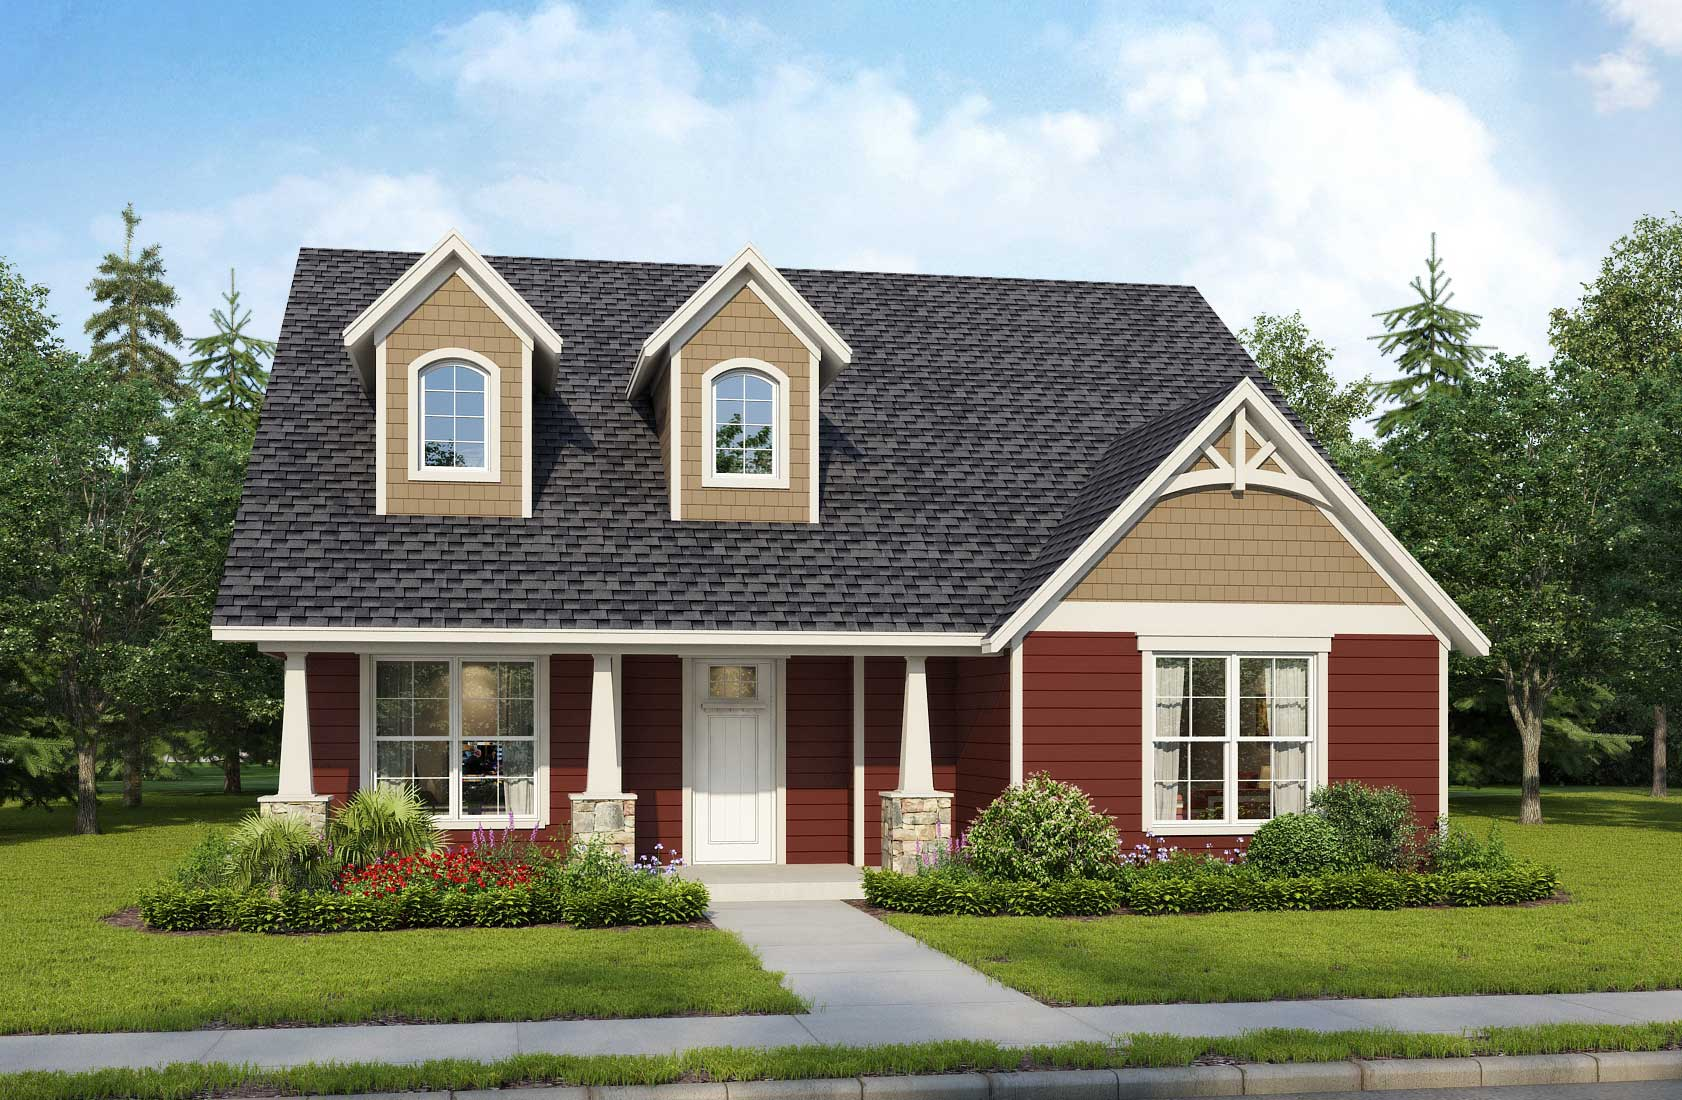 Model home on Eve Mae Blvd Lot #9